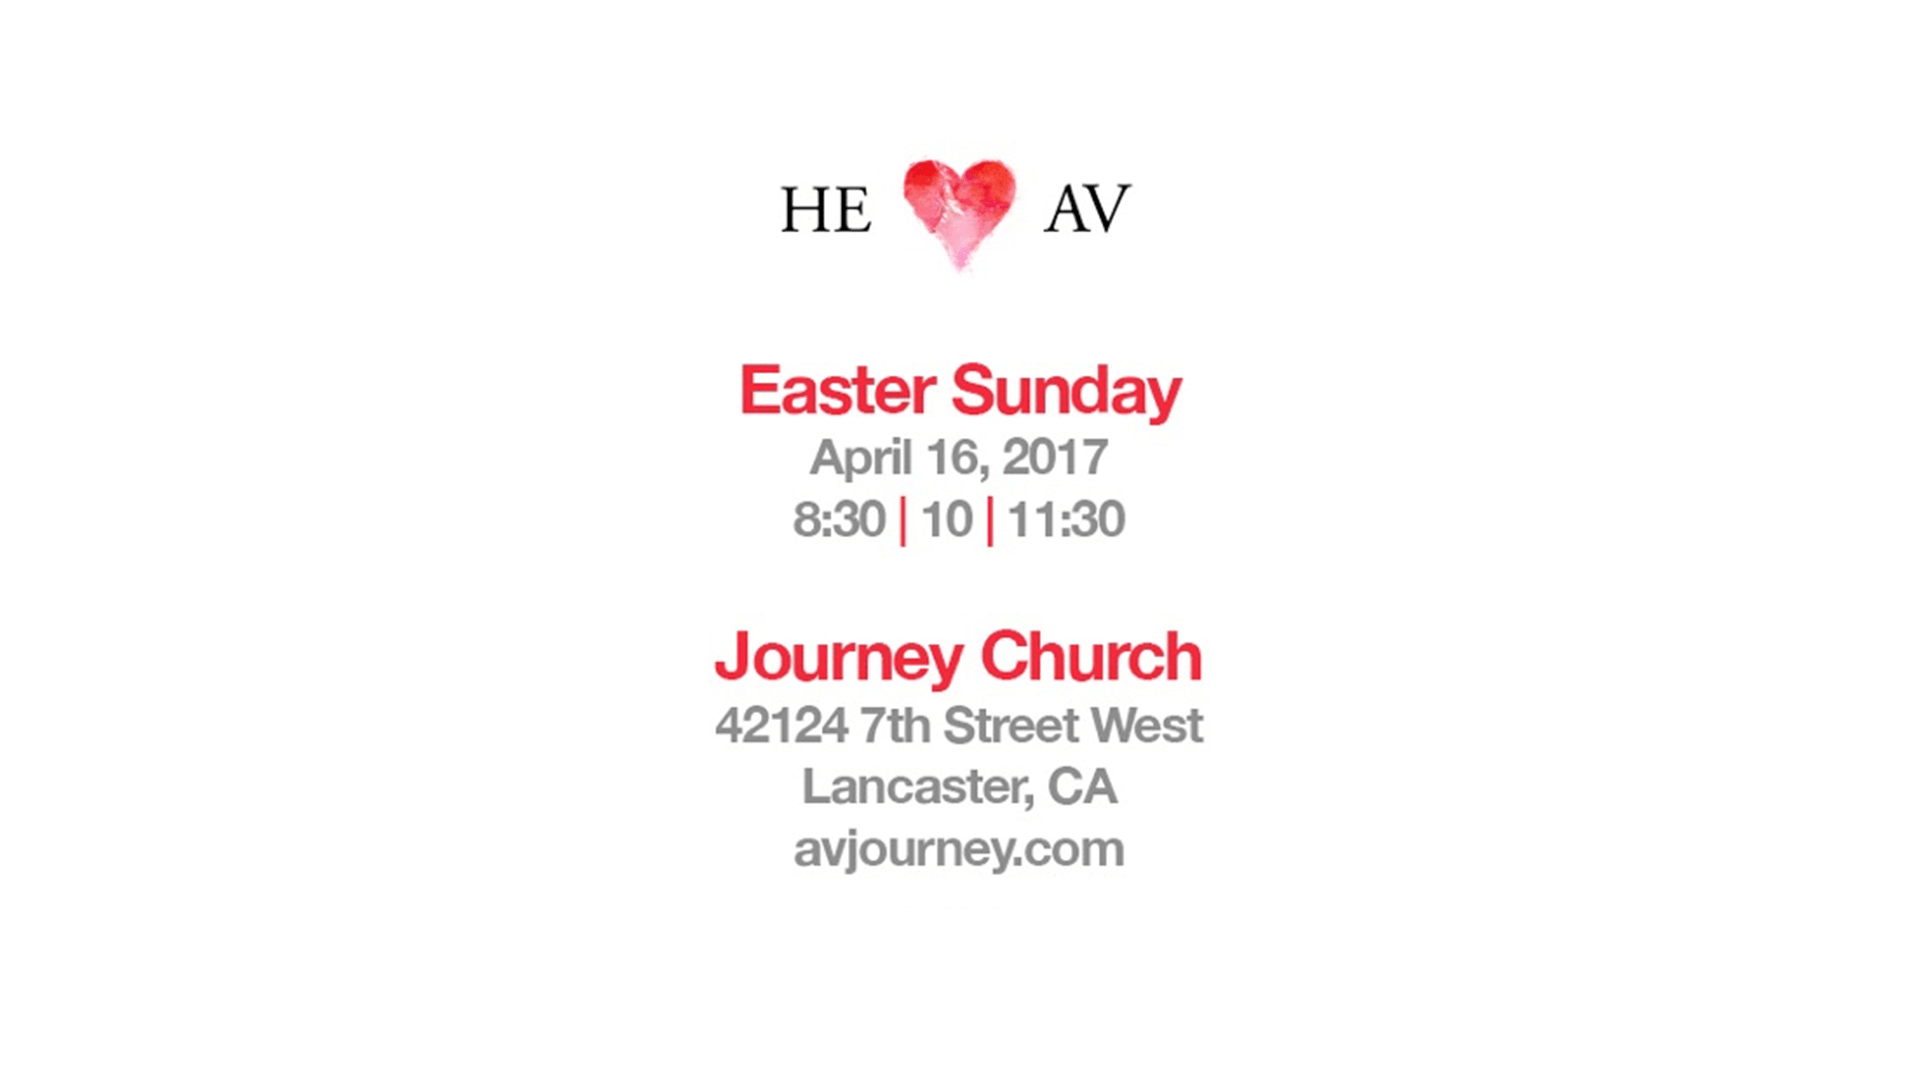 Journey Church: He Hearts AV